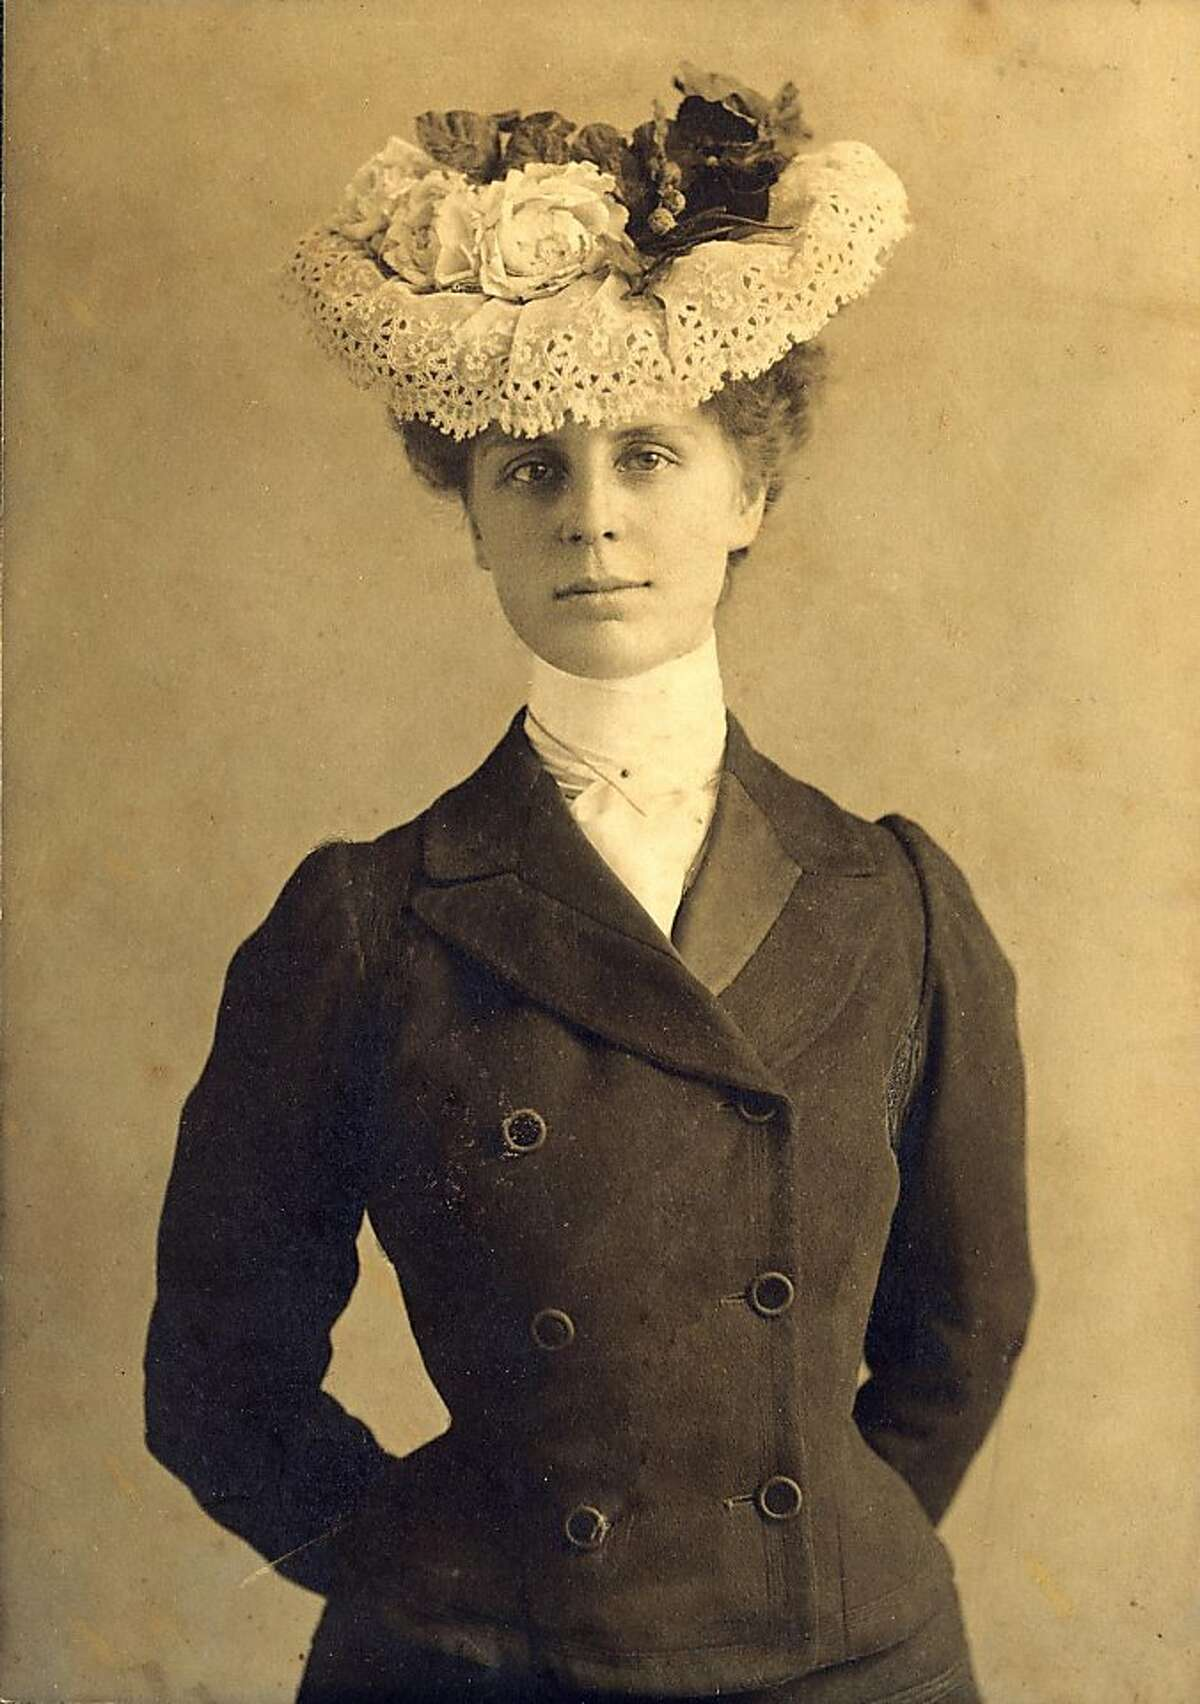 Dr. Leonie von Zesch in one of her signature hats. Date unknown, probably around 1903. She was interested in fashion and planned her attire the night before the 1906 quake to give a lift to the next day,